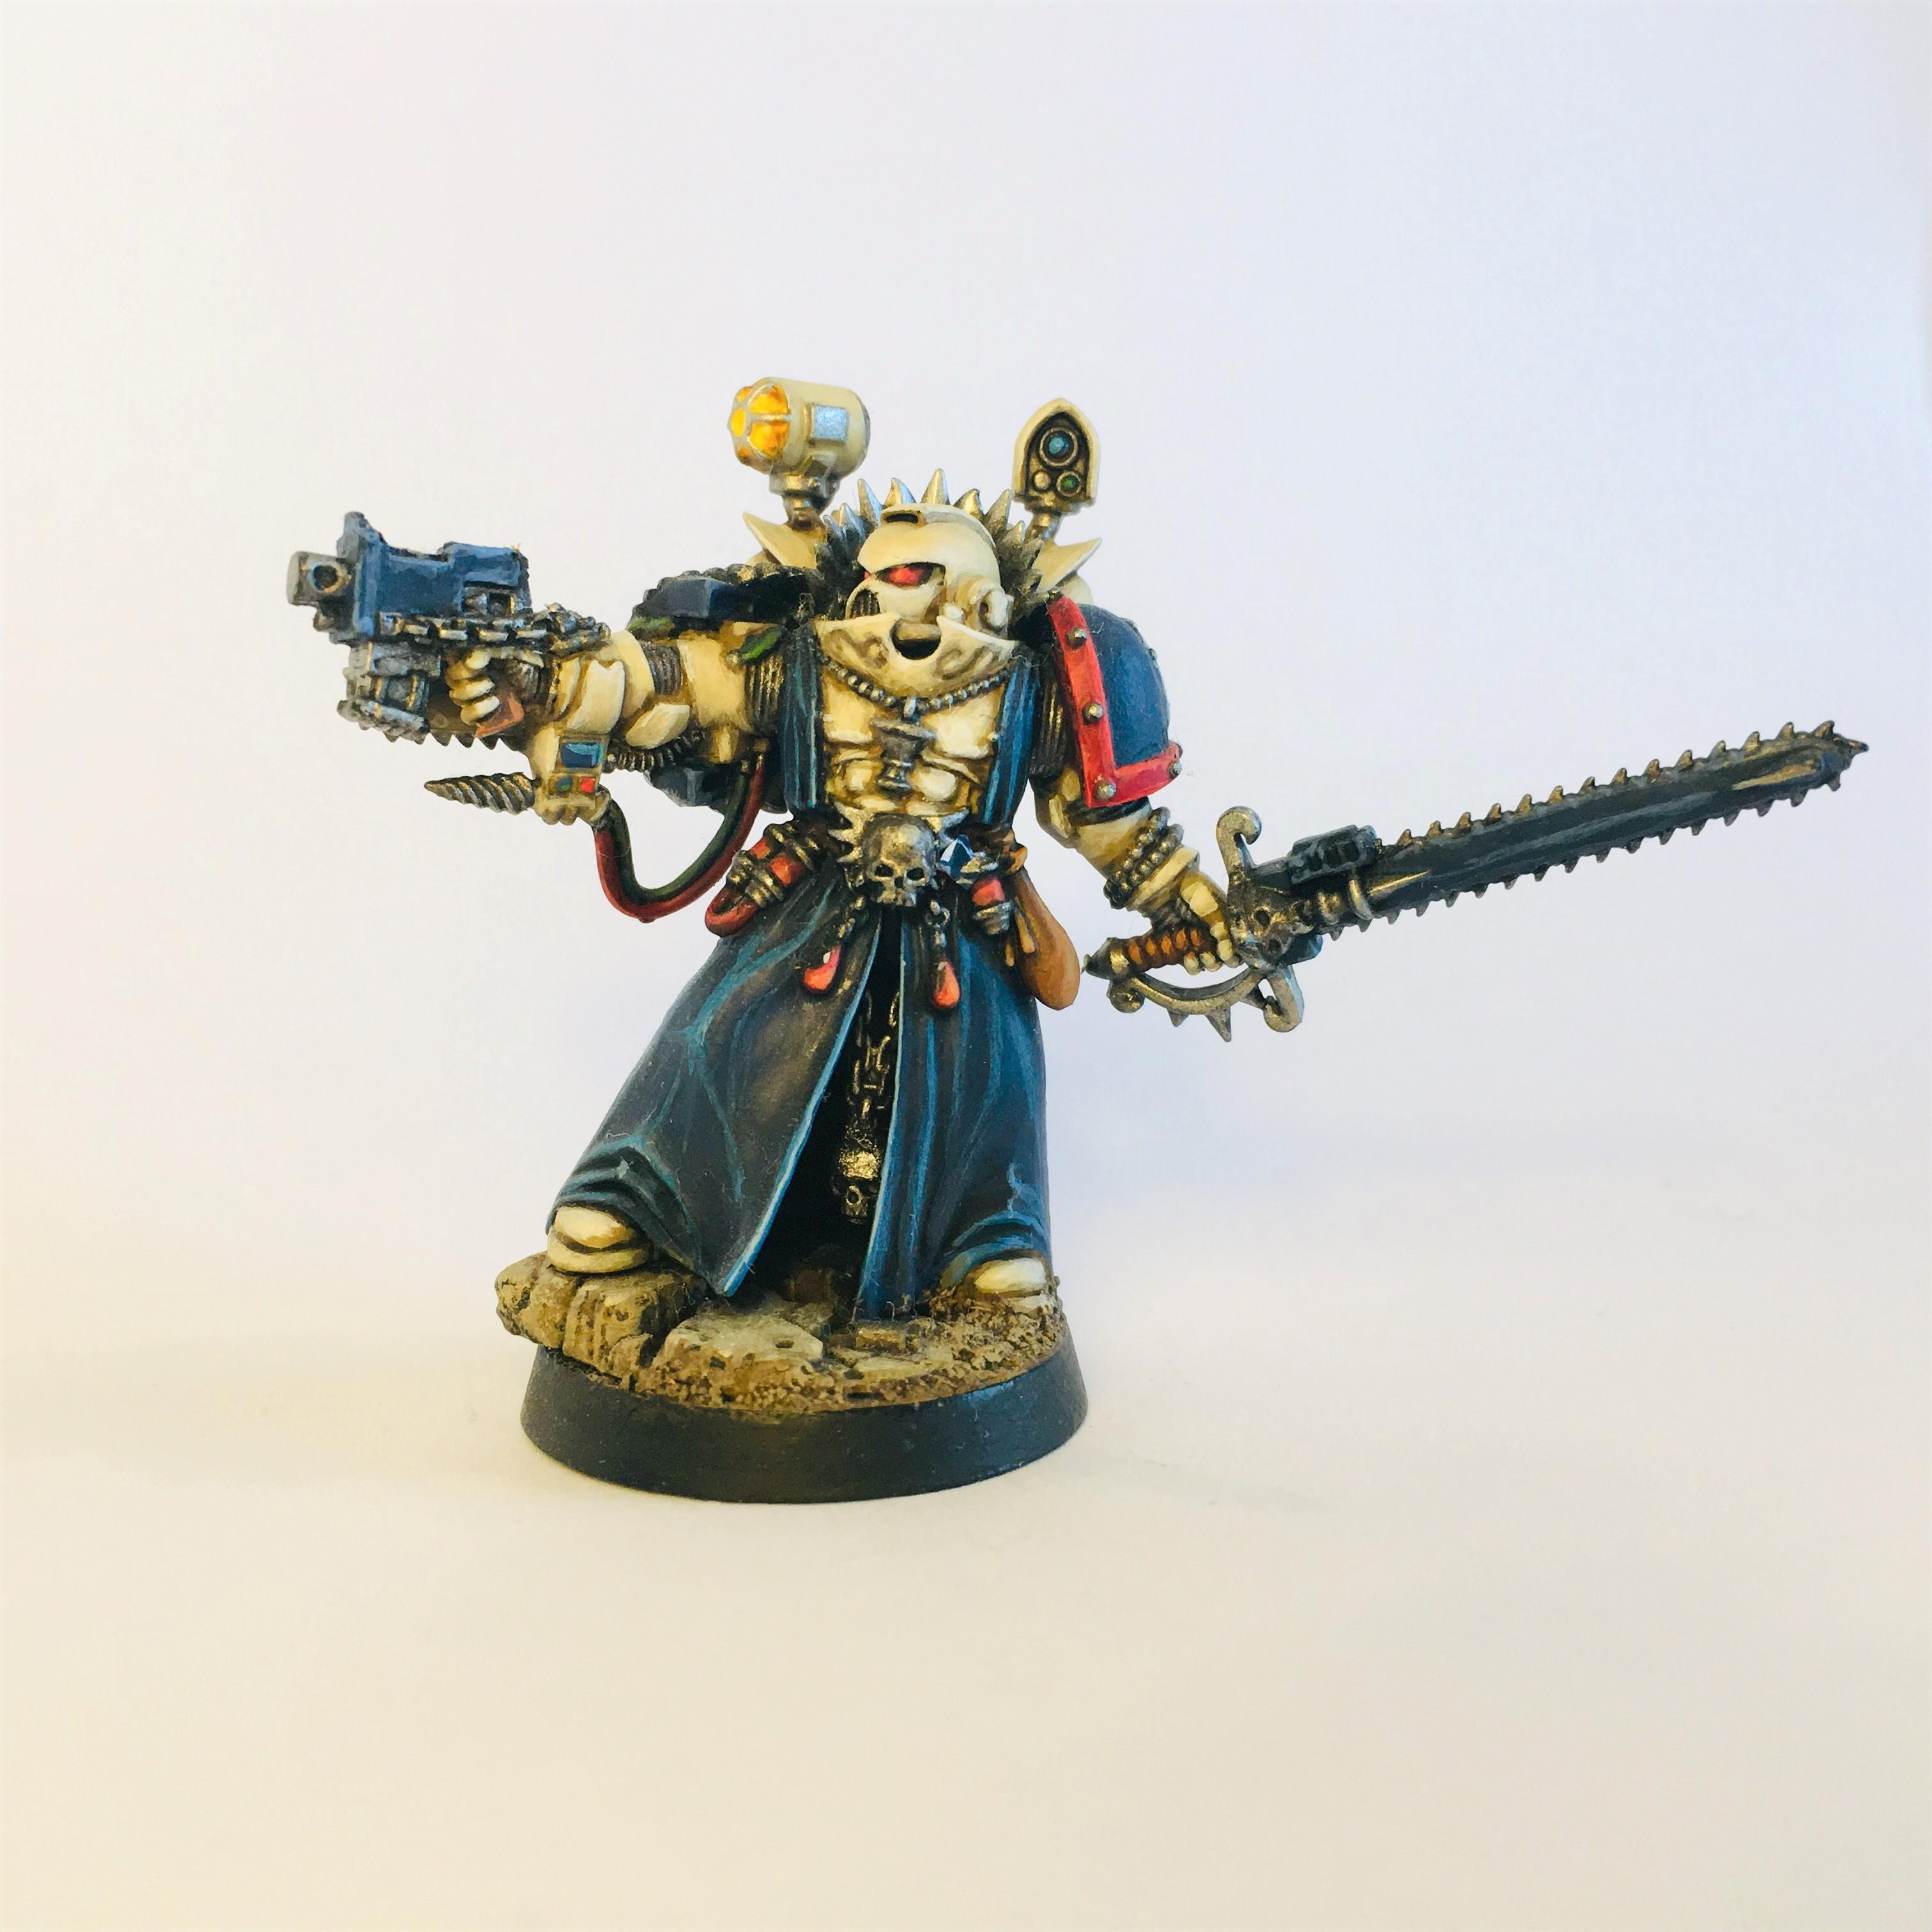 Apothecary, Blood Angels, Brotherhood Of The Sword, Conversion, Sanguinary Priest, Space Marines